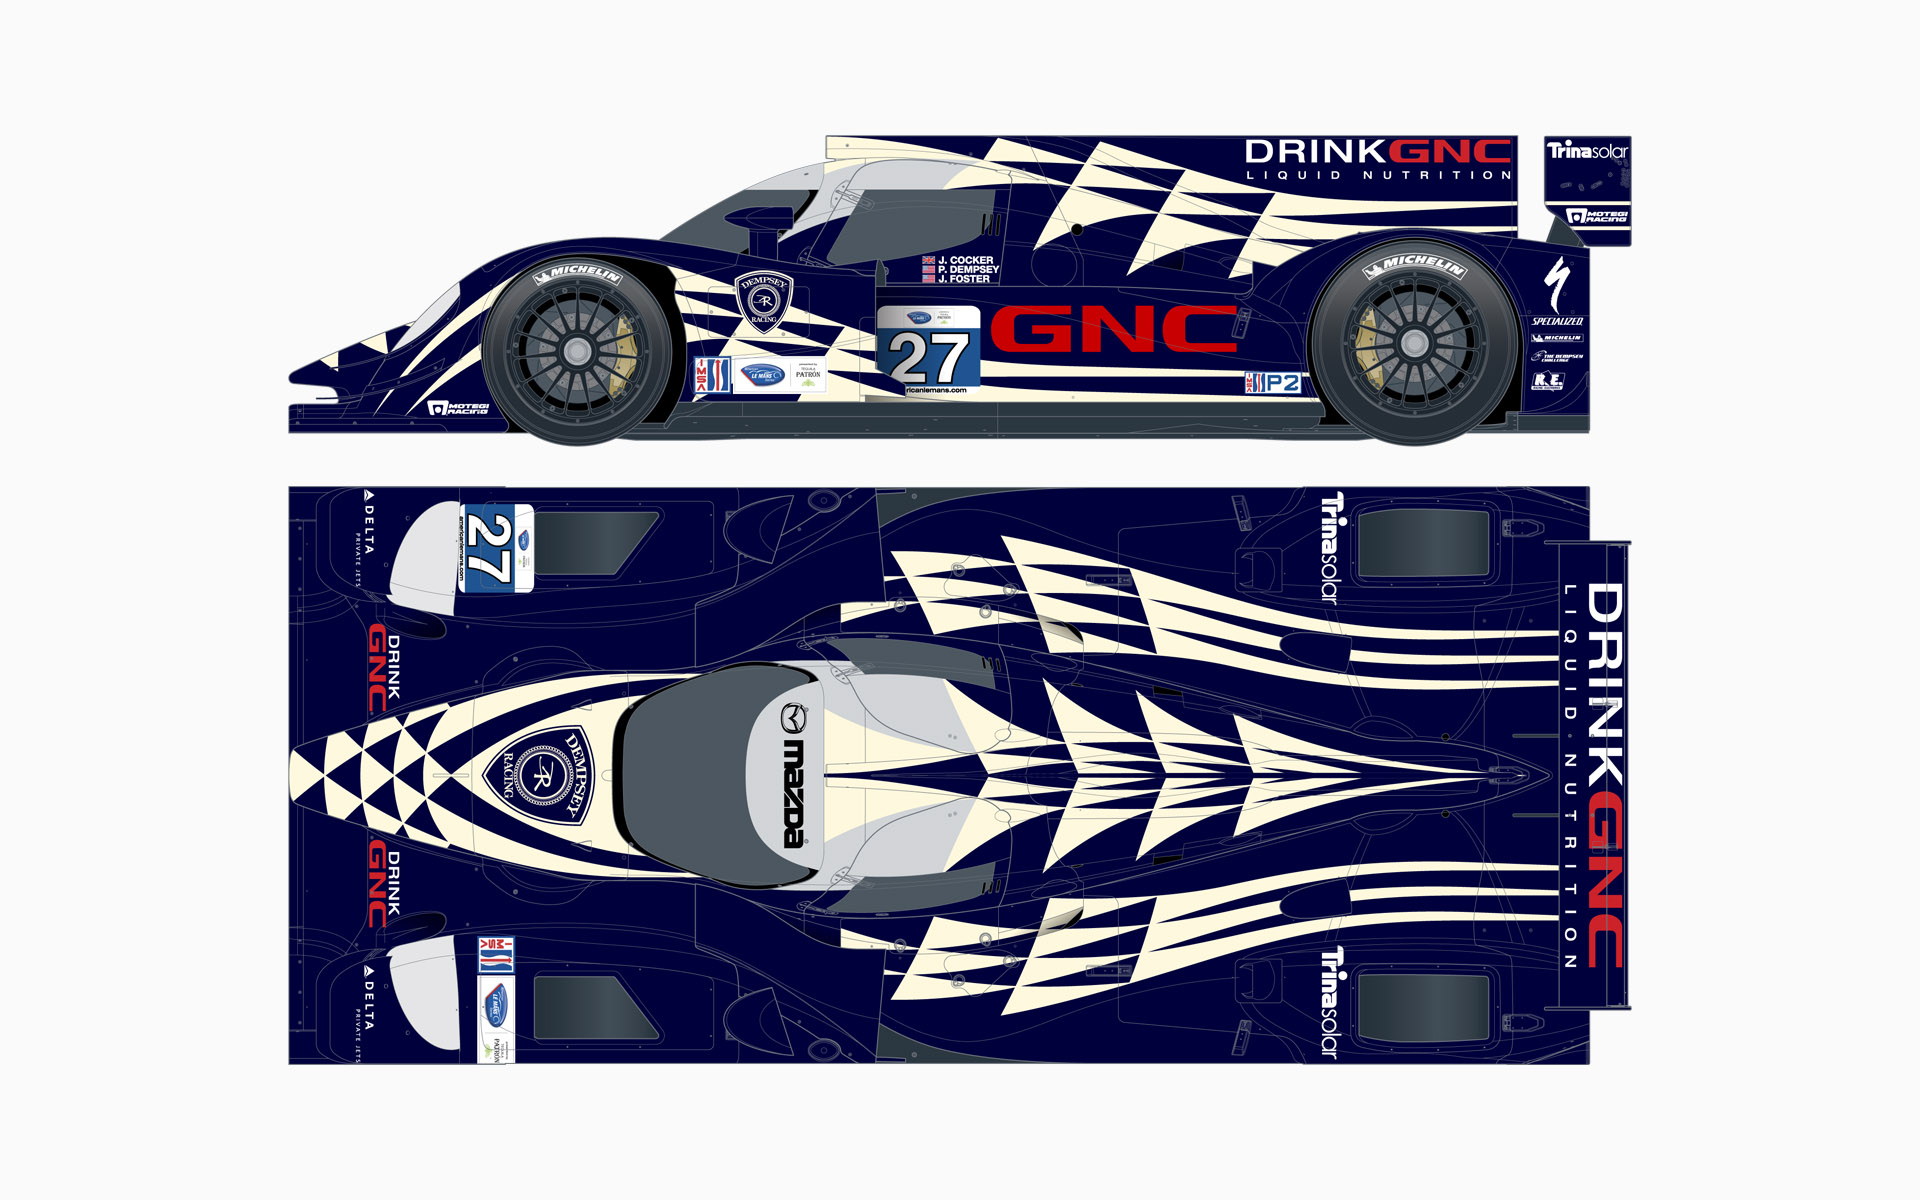 2012 Dempsey Racing Lola B12/80 LMP2 Livery Elevations